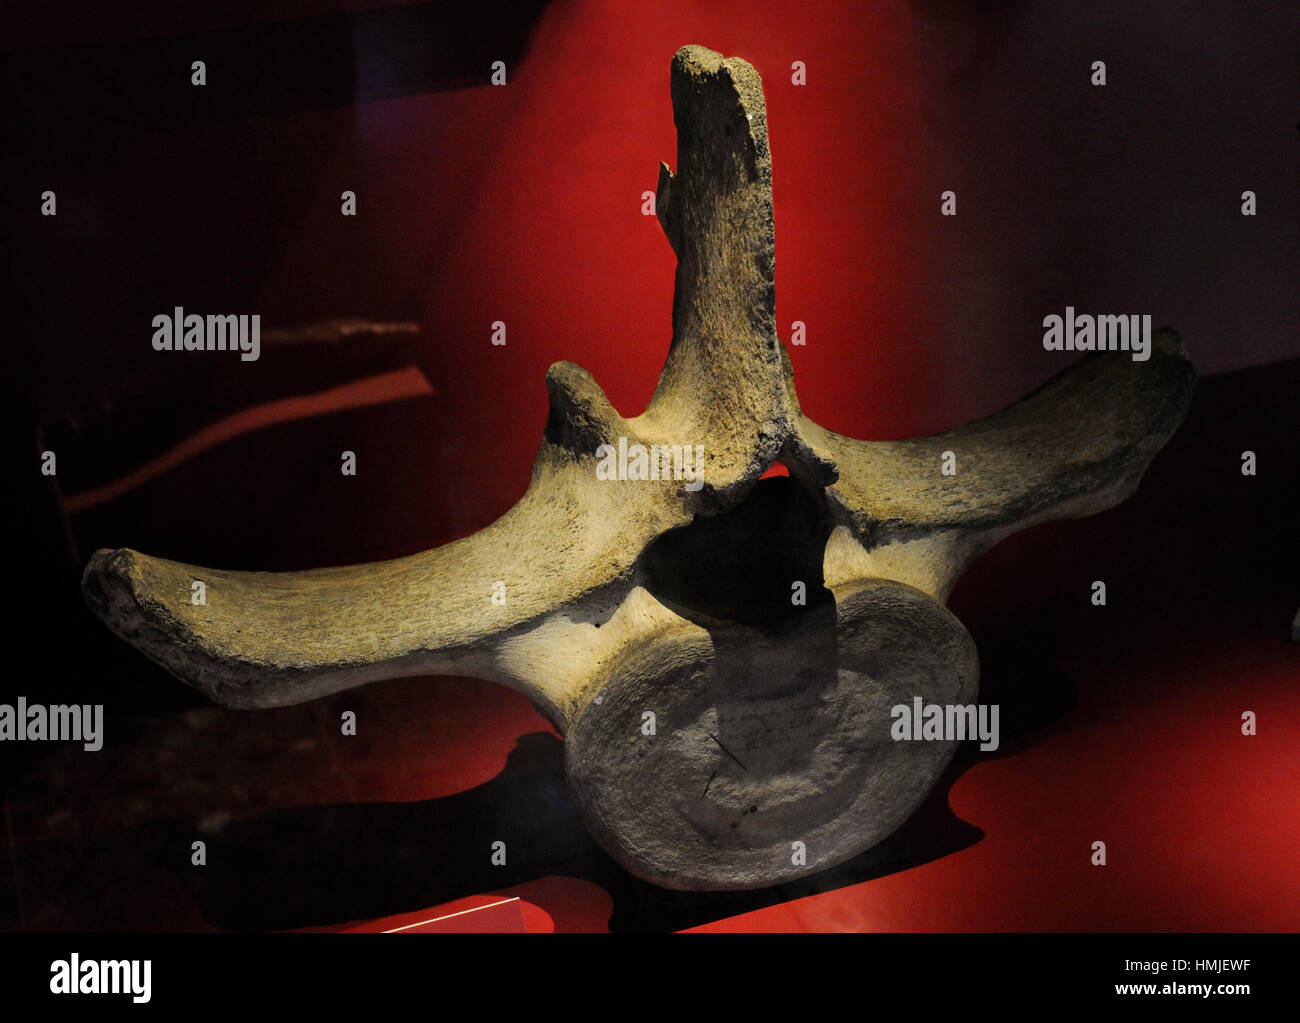 Blue Whale (Balaenoptera musculus). Vertebra. Maritime and Science Museum. Malmo. Sweden. - Stock Image